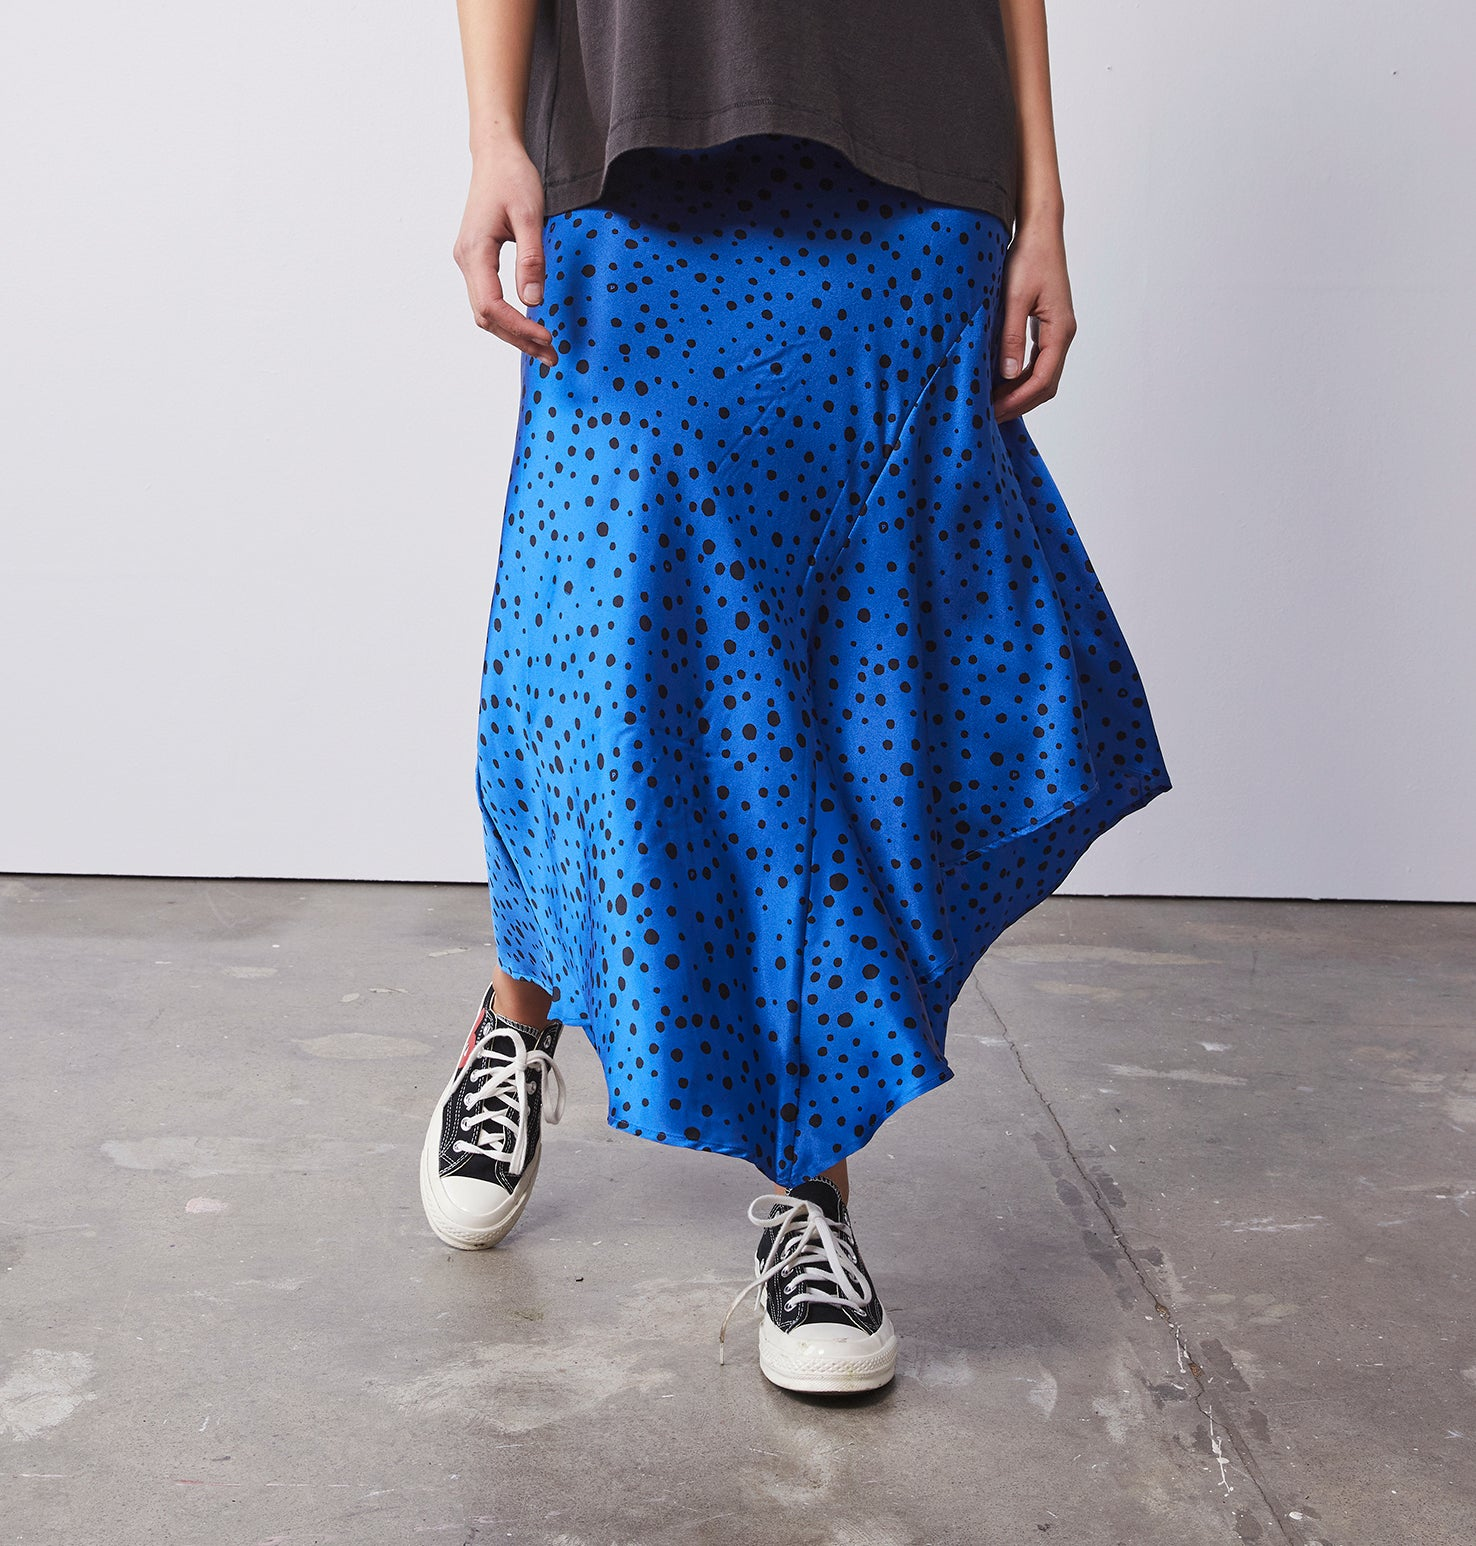 Asymmetrical Slip Skirt - Polka Dot Blue